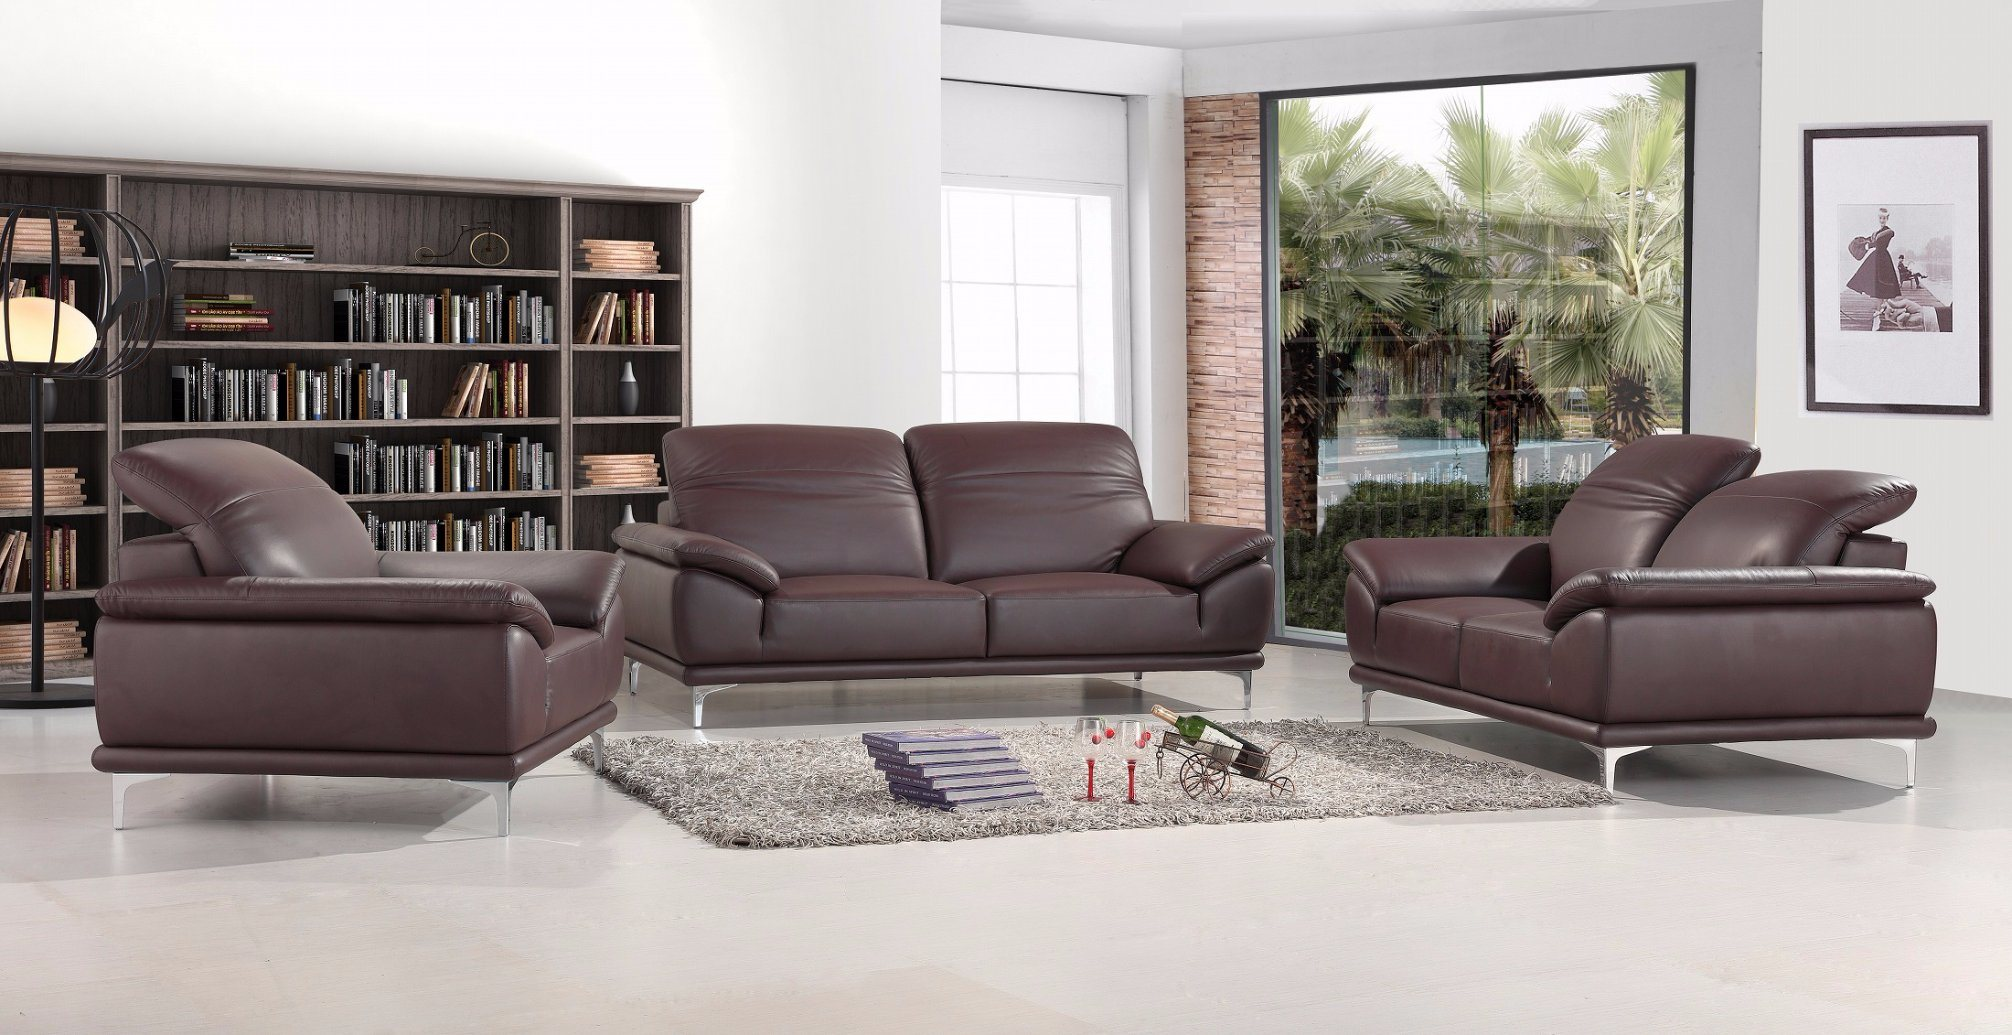 italian ct leather sectional cado modern sofas contemporary white furniture sofa